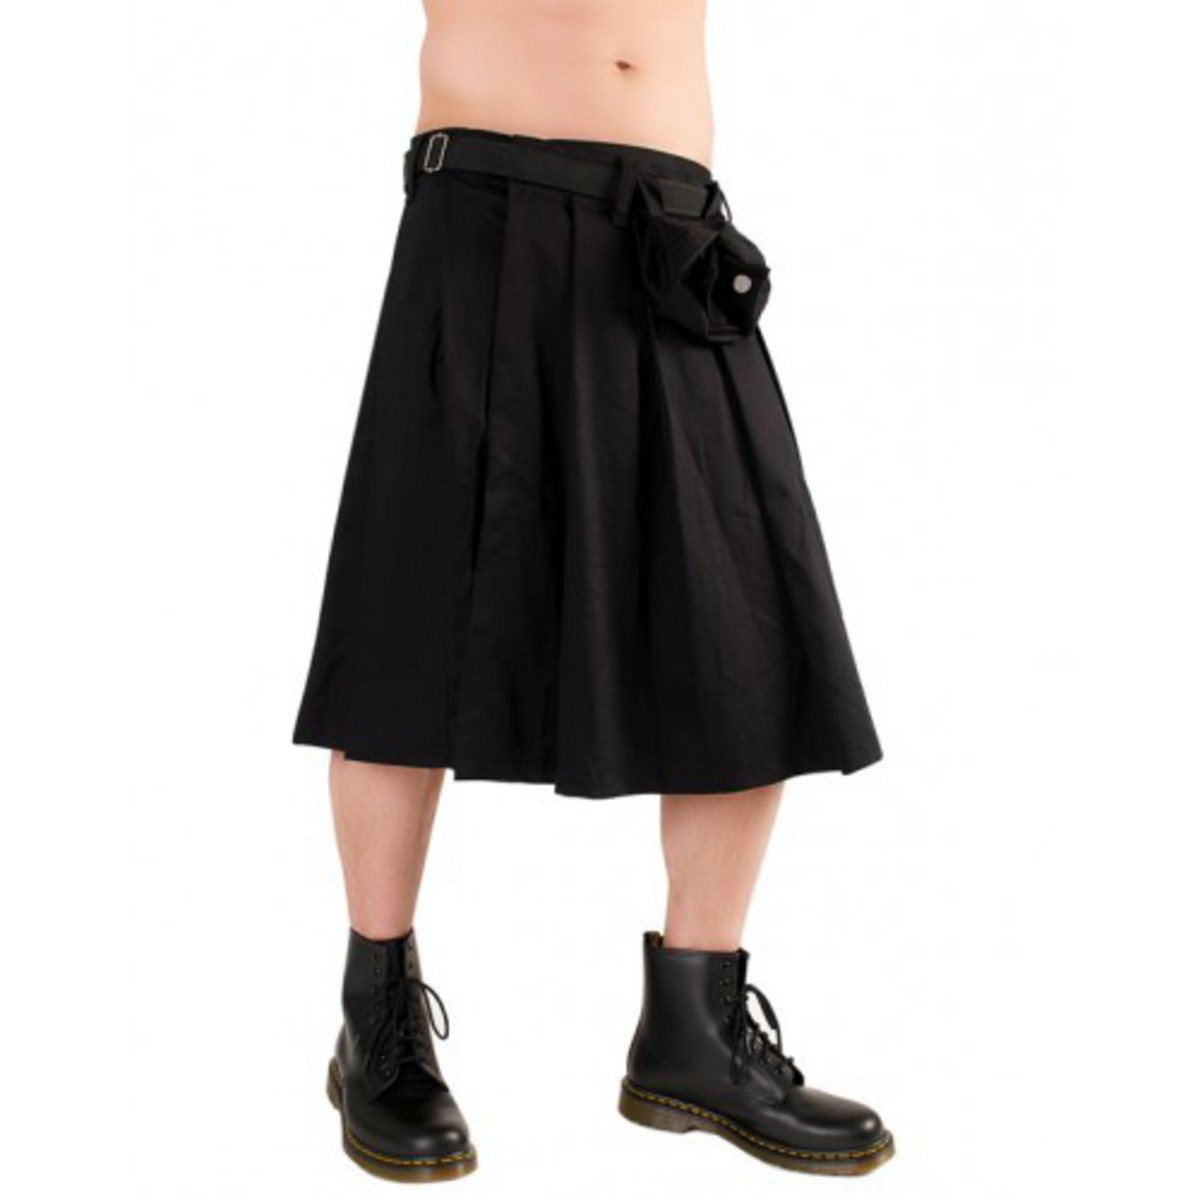 kilt Black Pistol - Short Kilt Denim Black - B-2-10-001-00 XXL